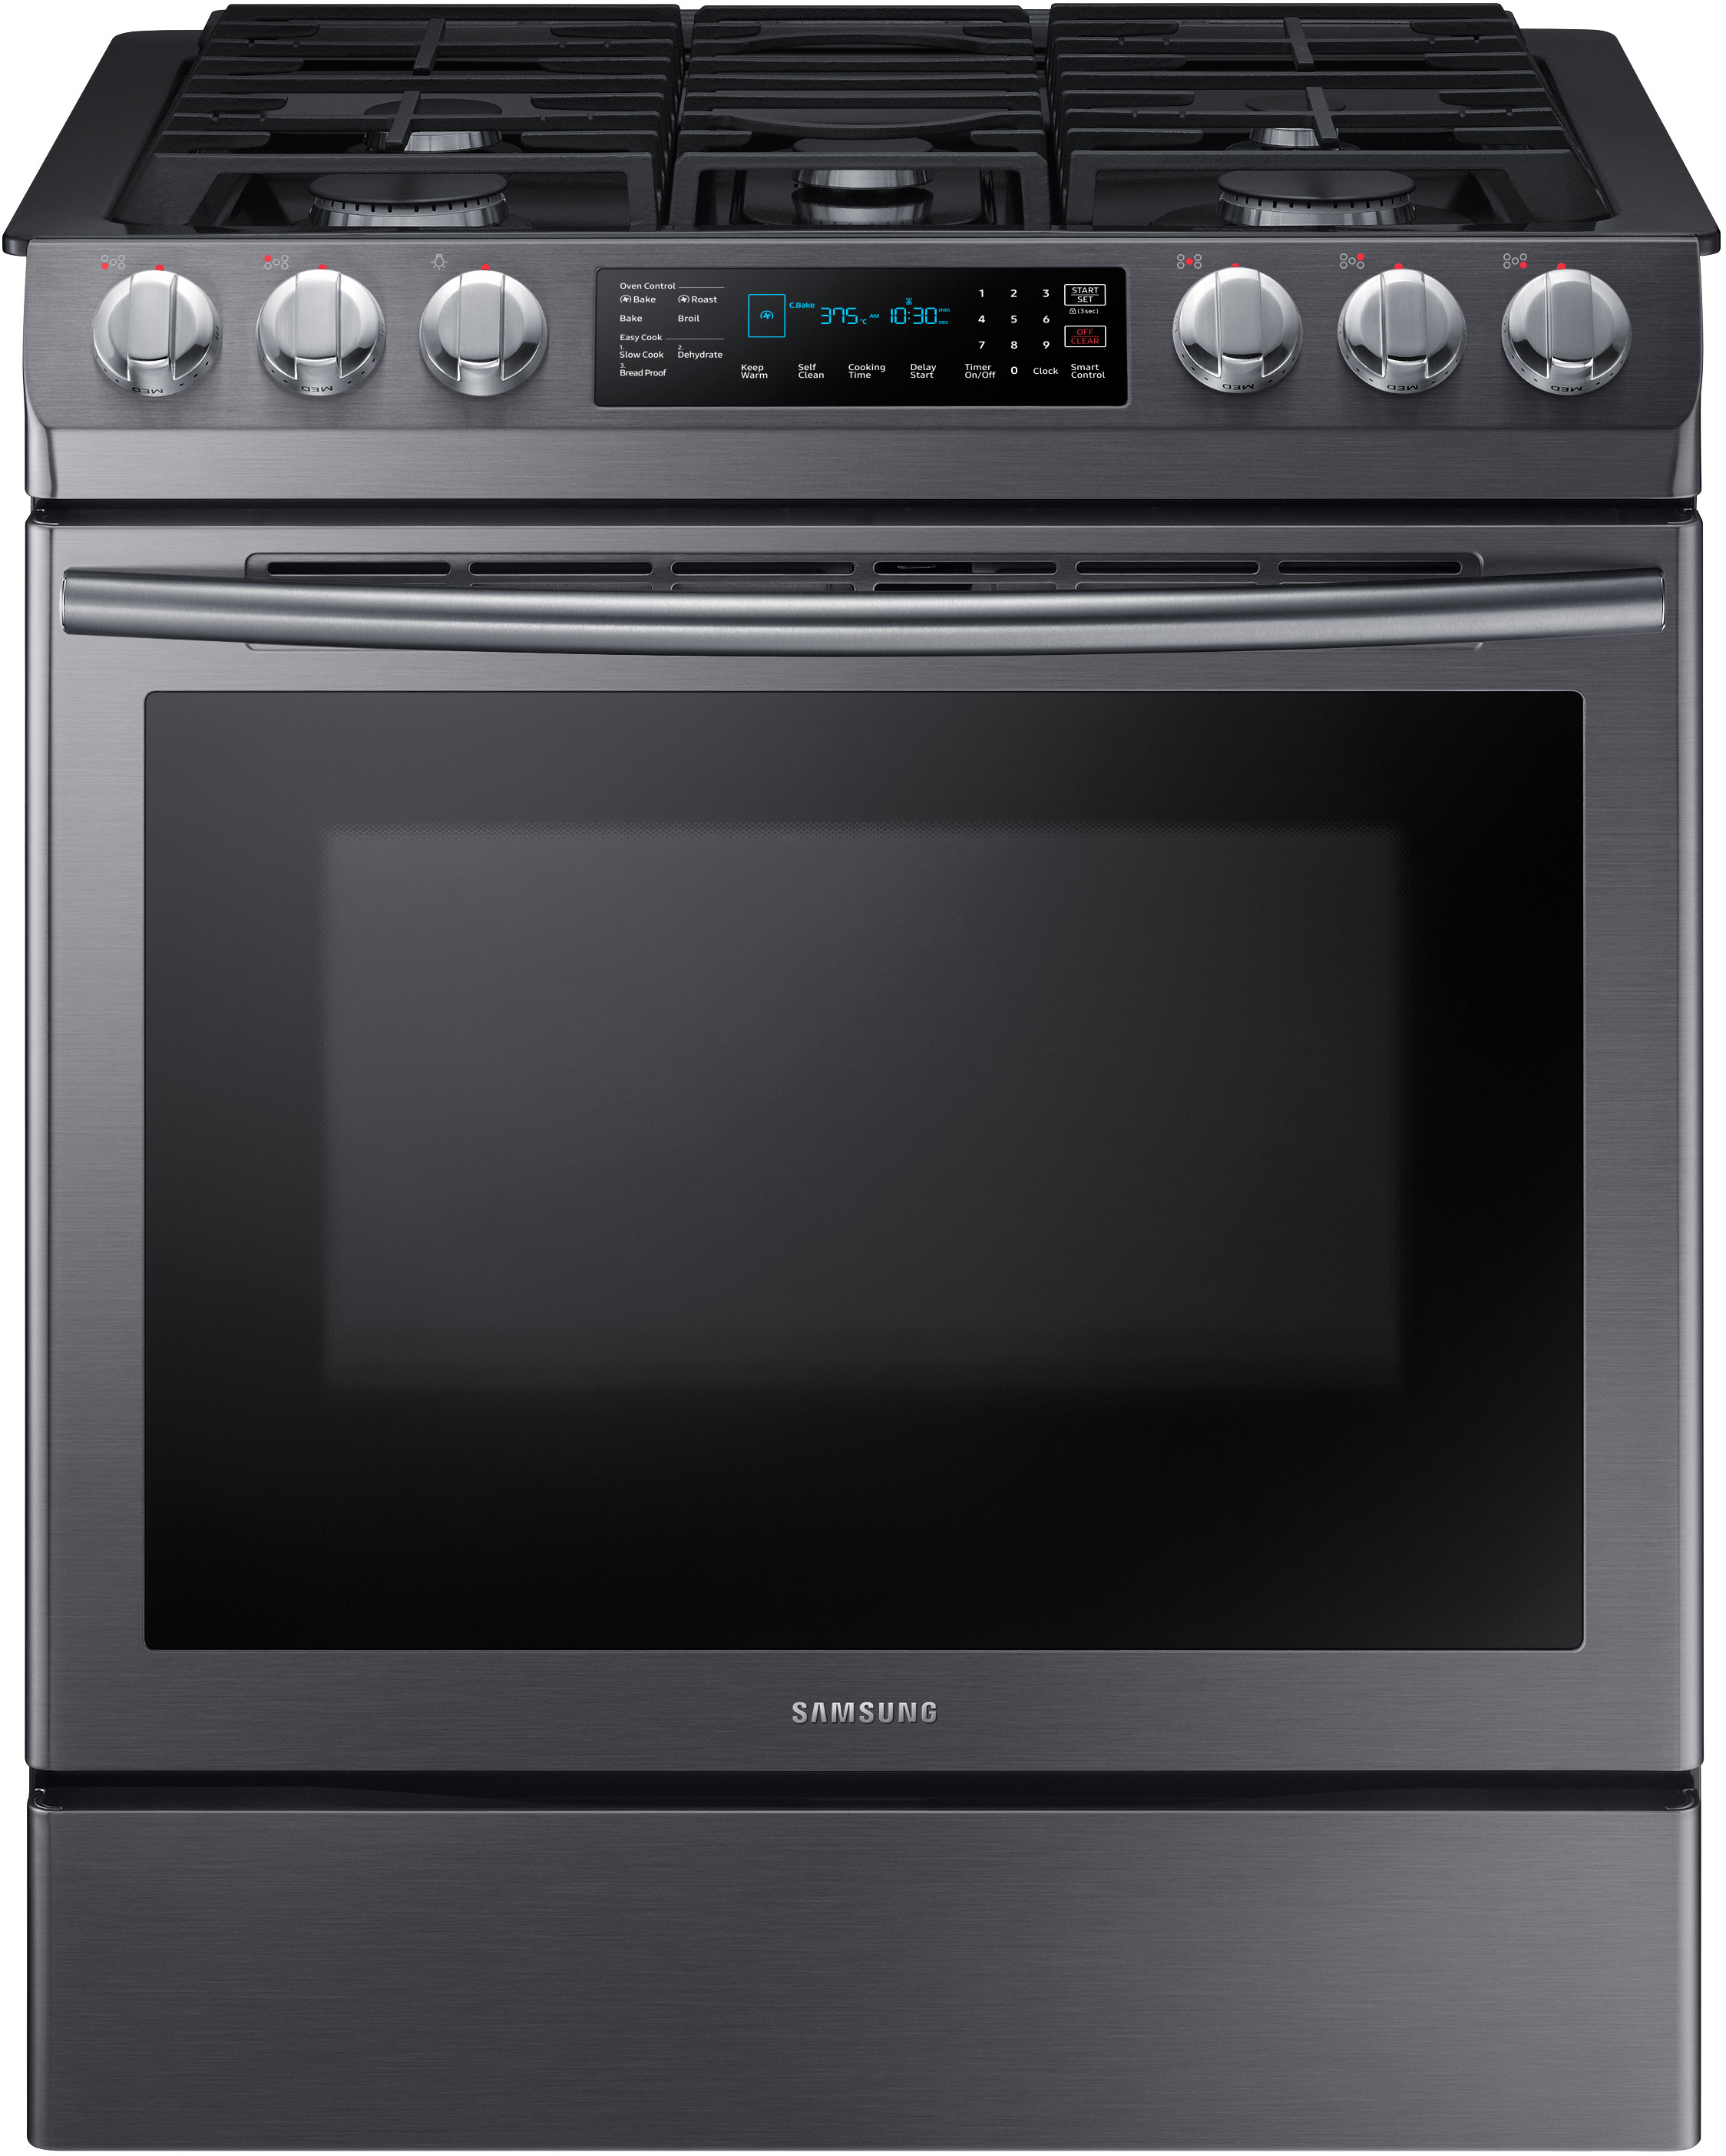 Samsung Nx58n9420sg 30 Inch Slide In Gas Range With